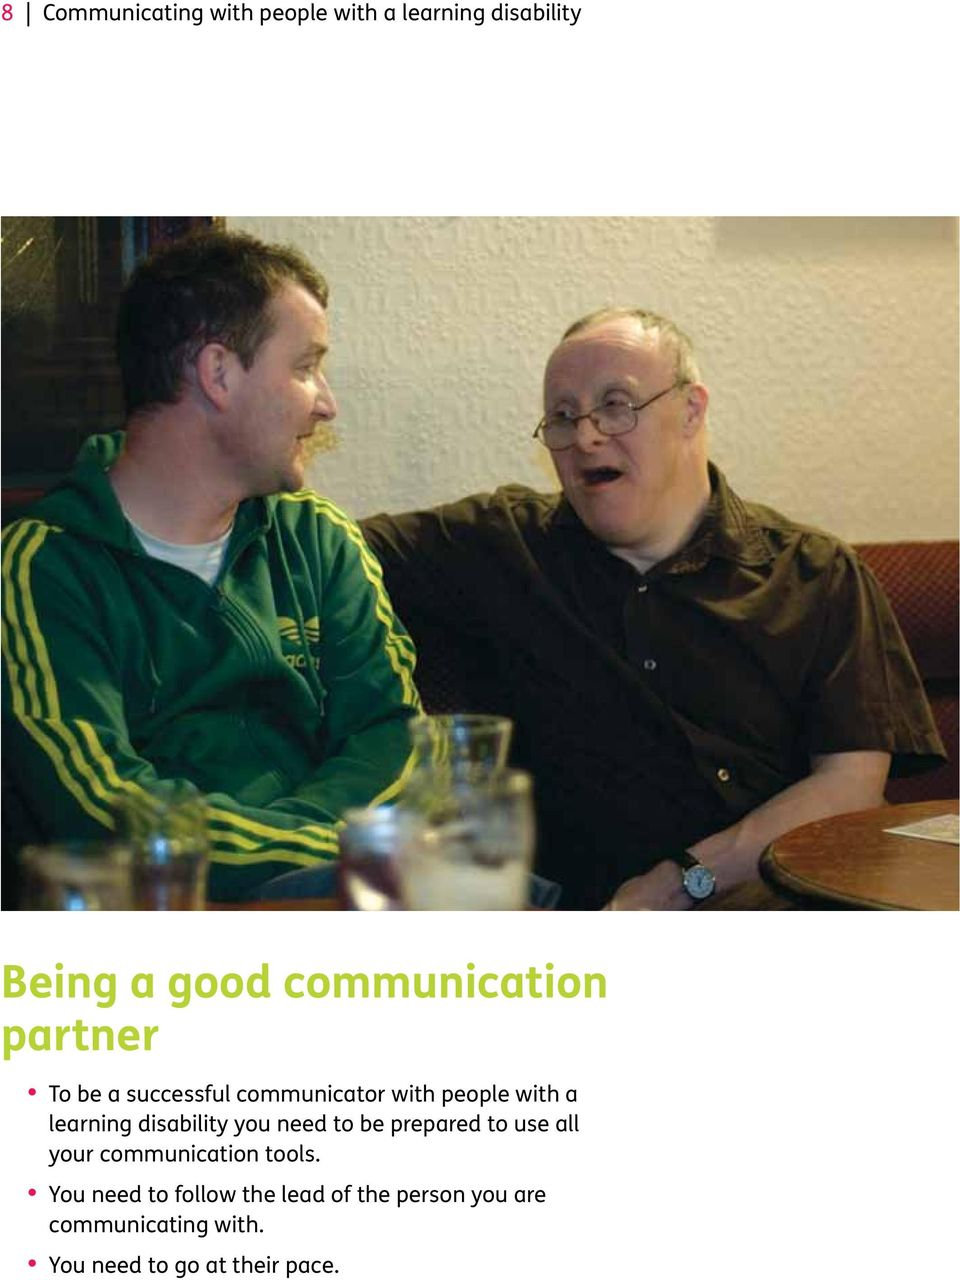 learning disability you need to be prepared to use all your communication tools.